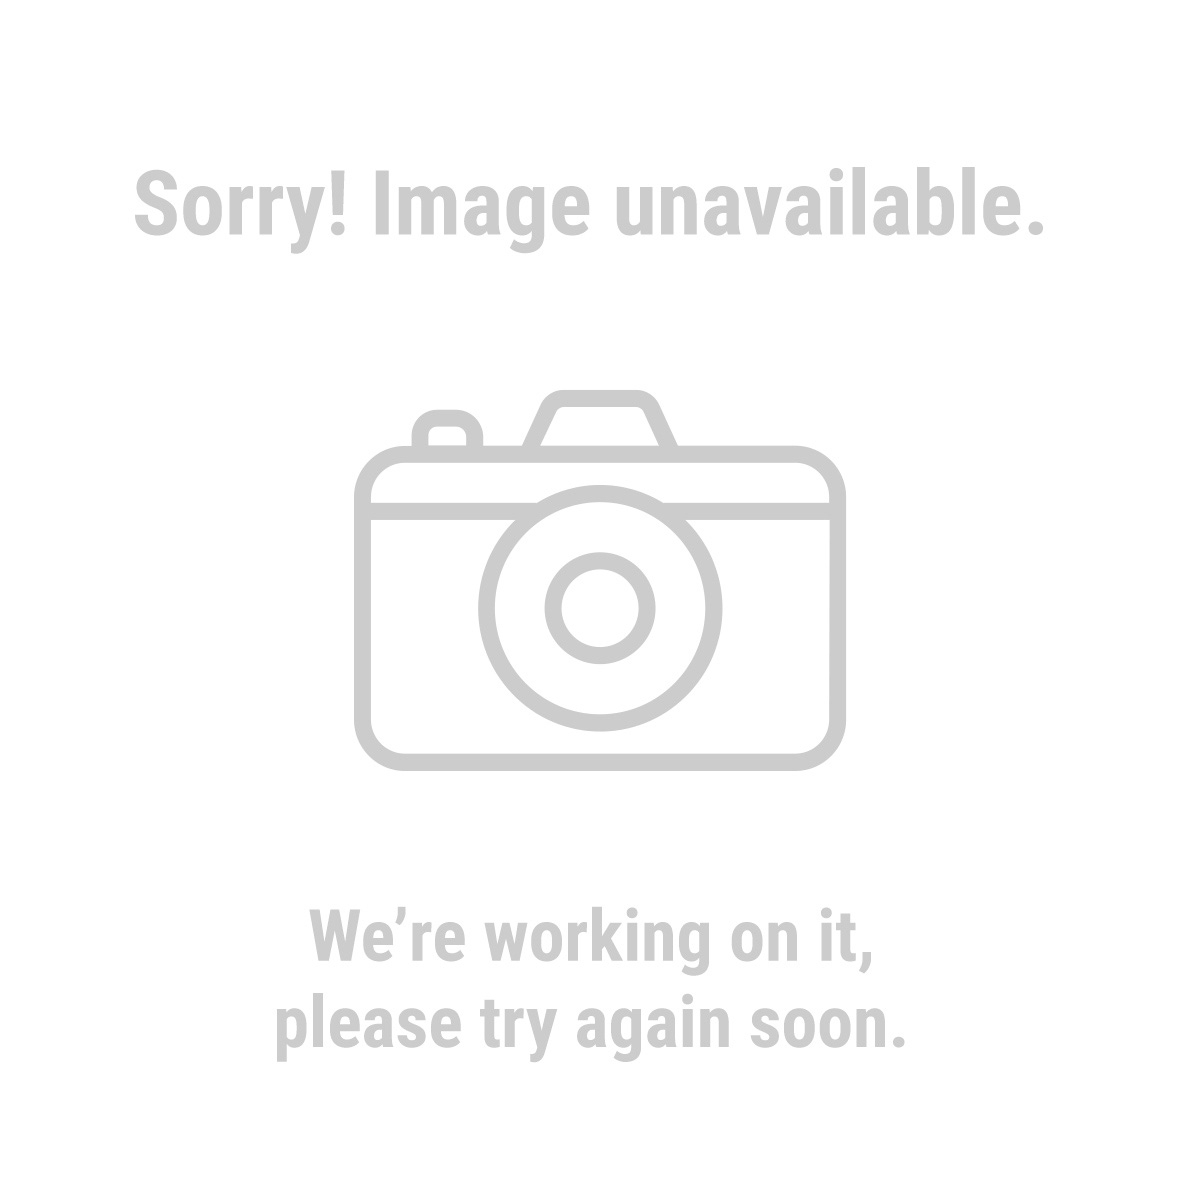 Central Hydraulics® 95643 50 Ton Industrial Hydraulic Bottle Jack